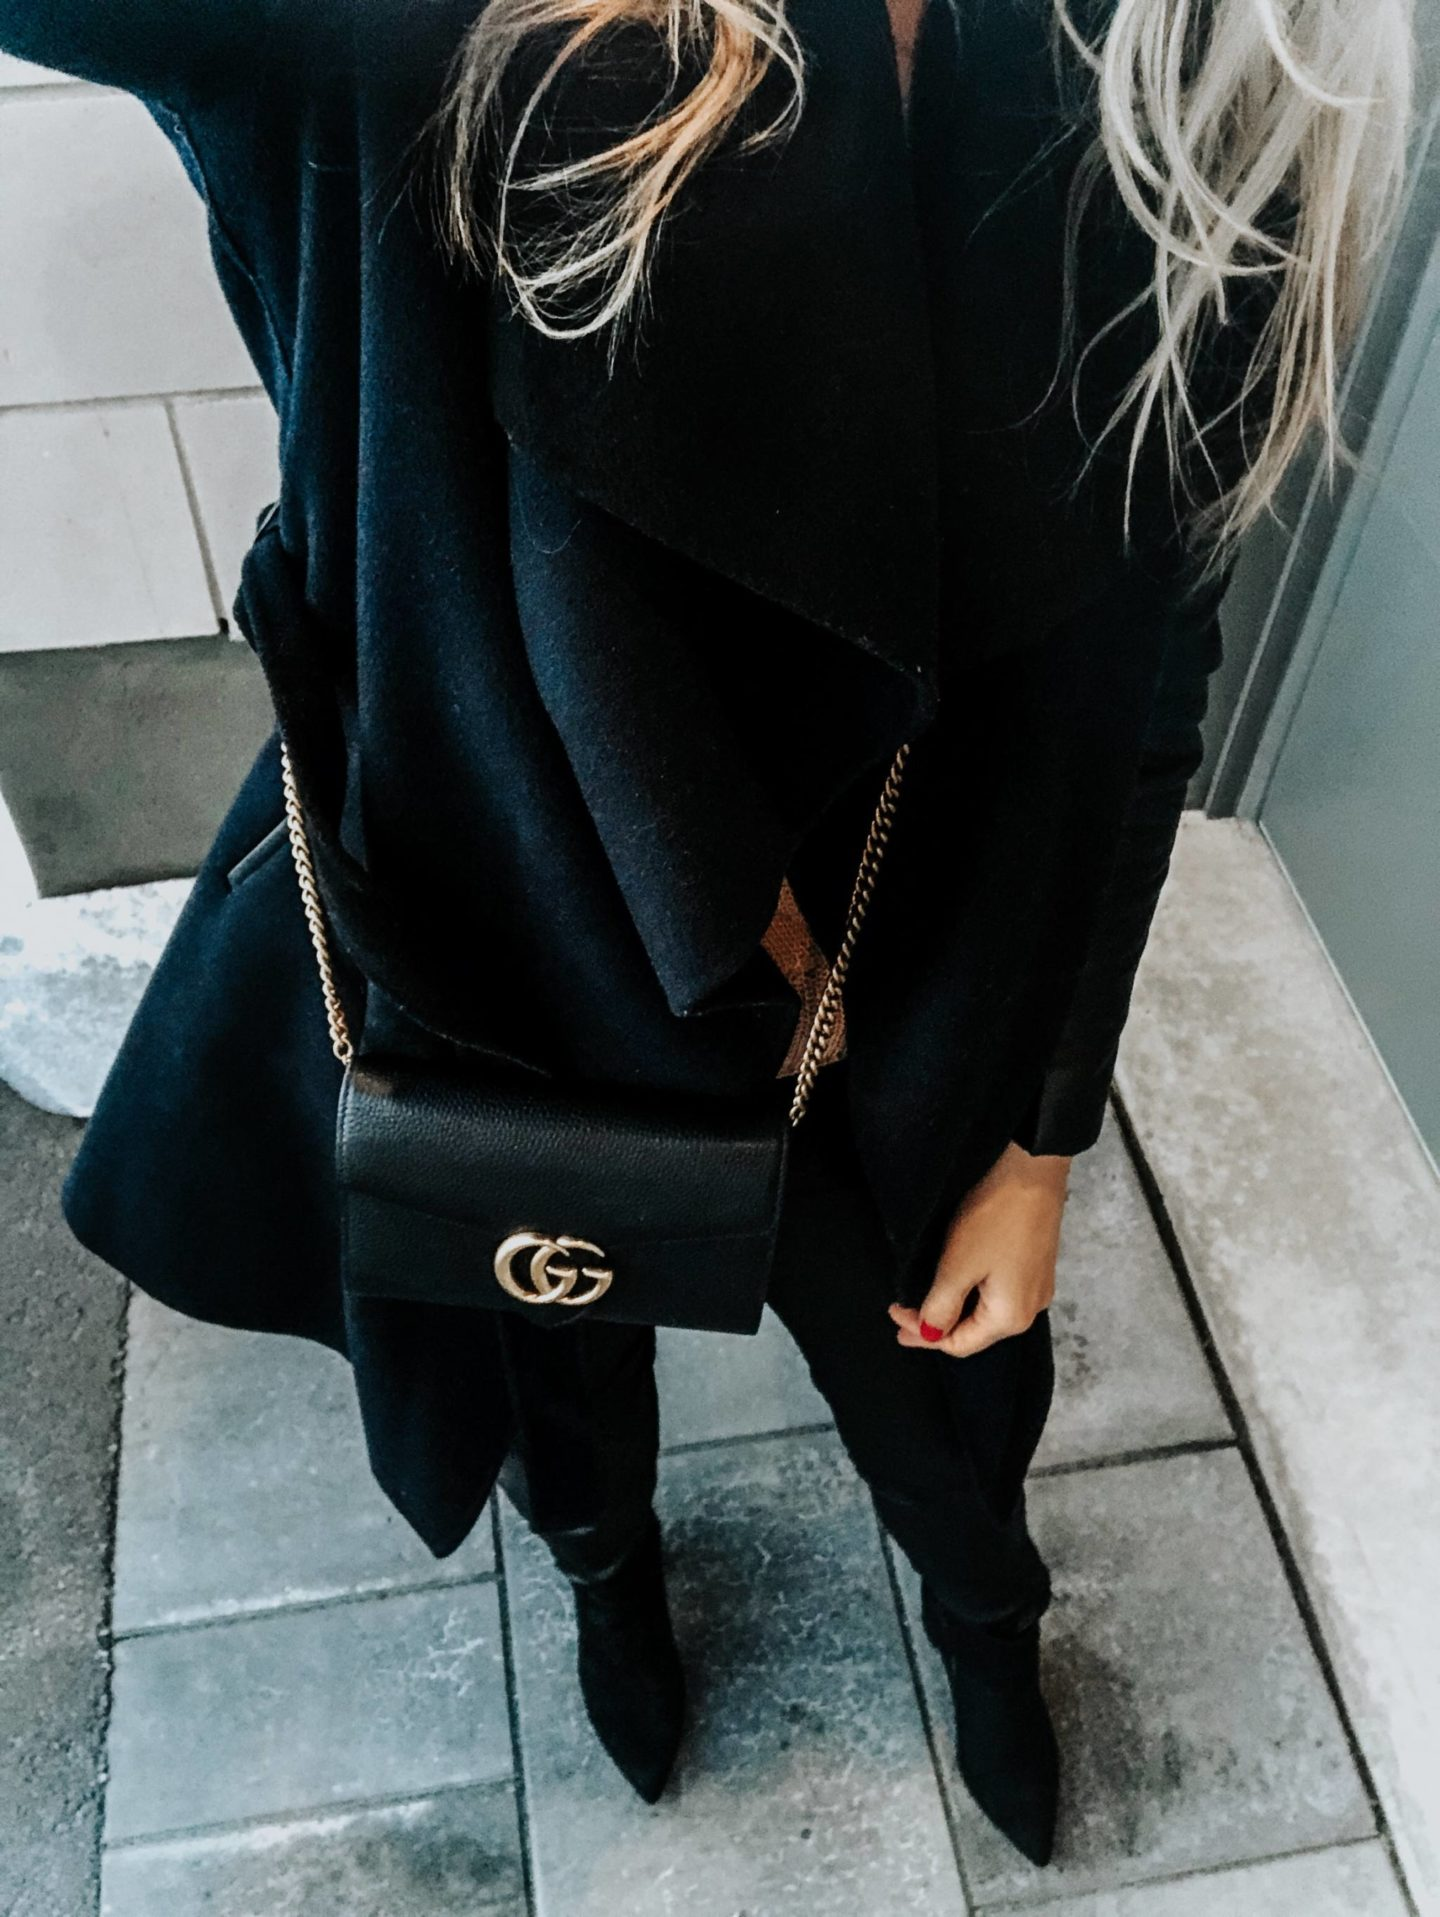 from where i stand photo of girl wearing all black and gucci bag